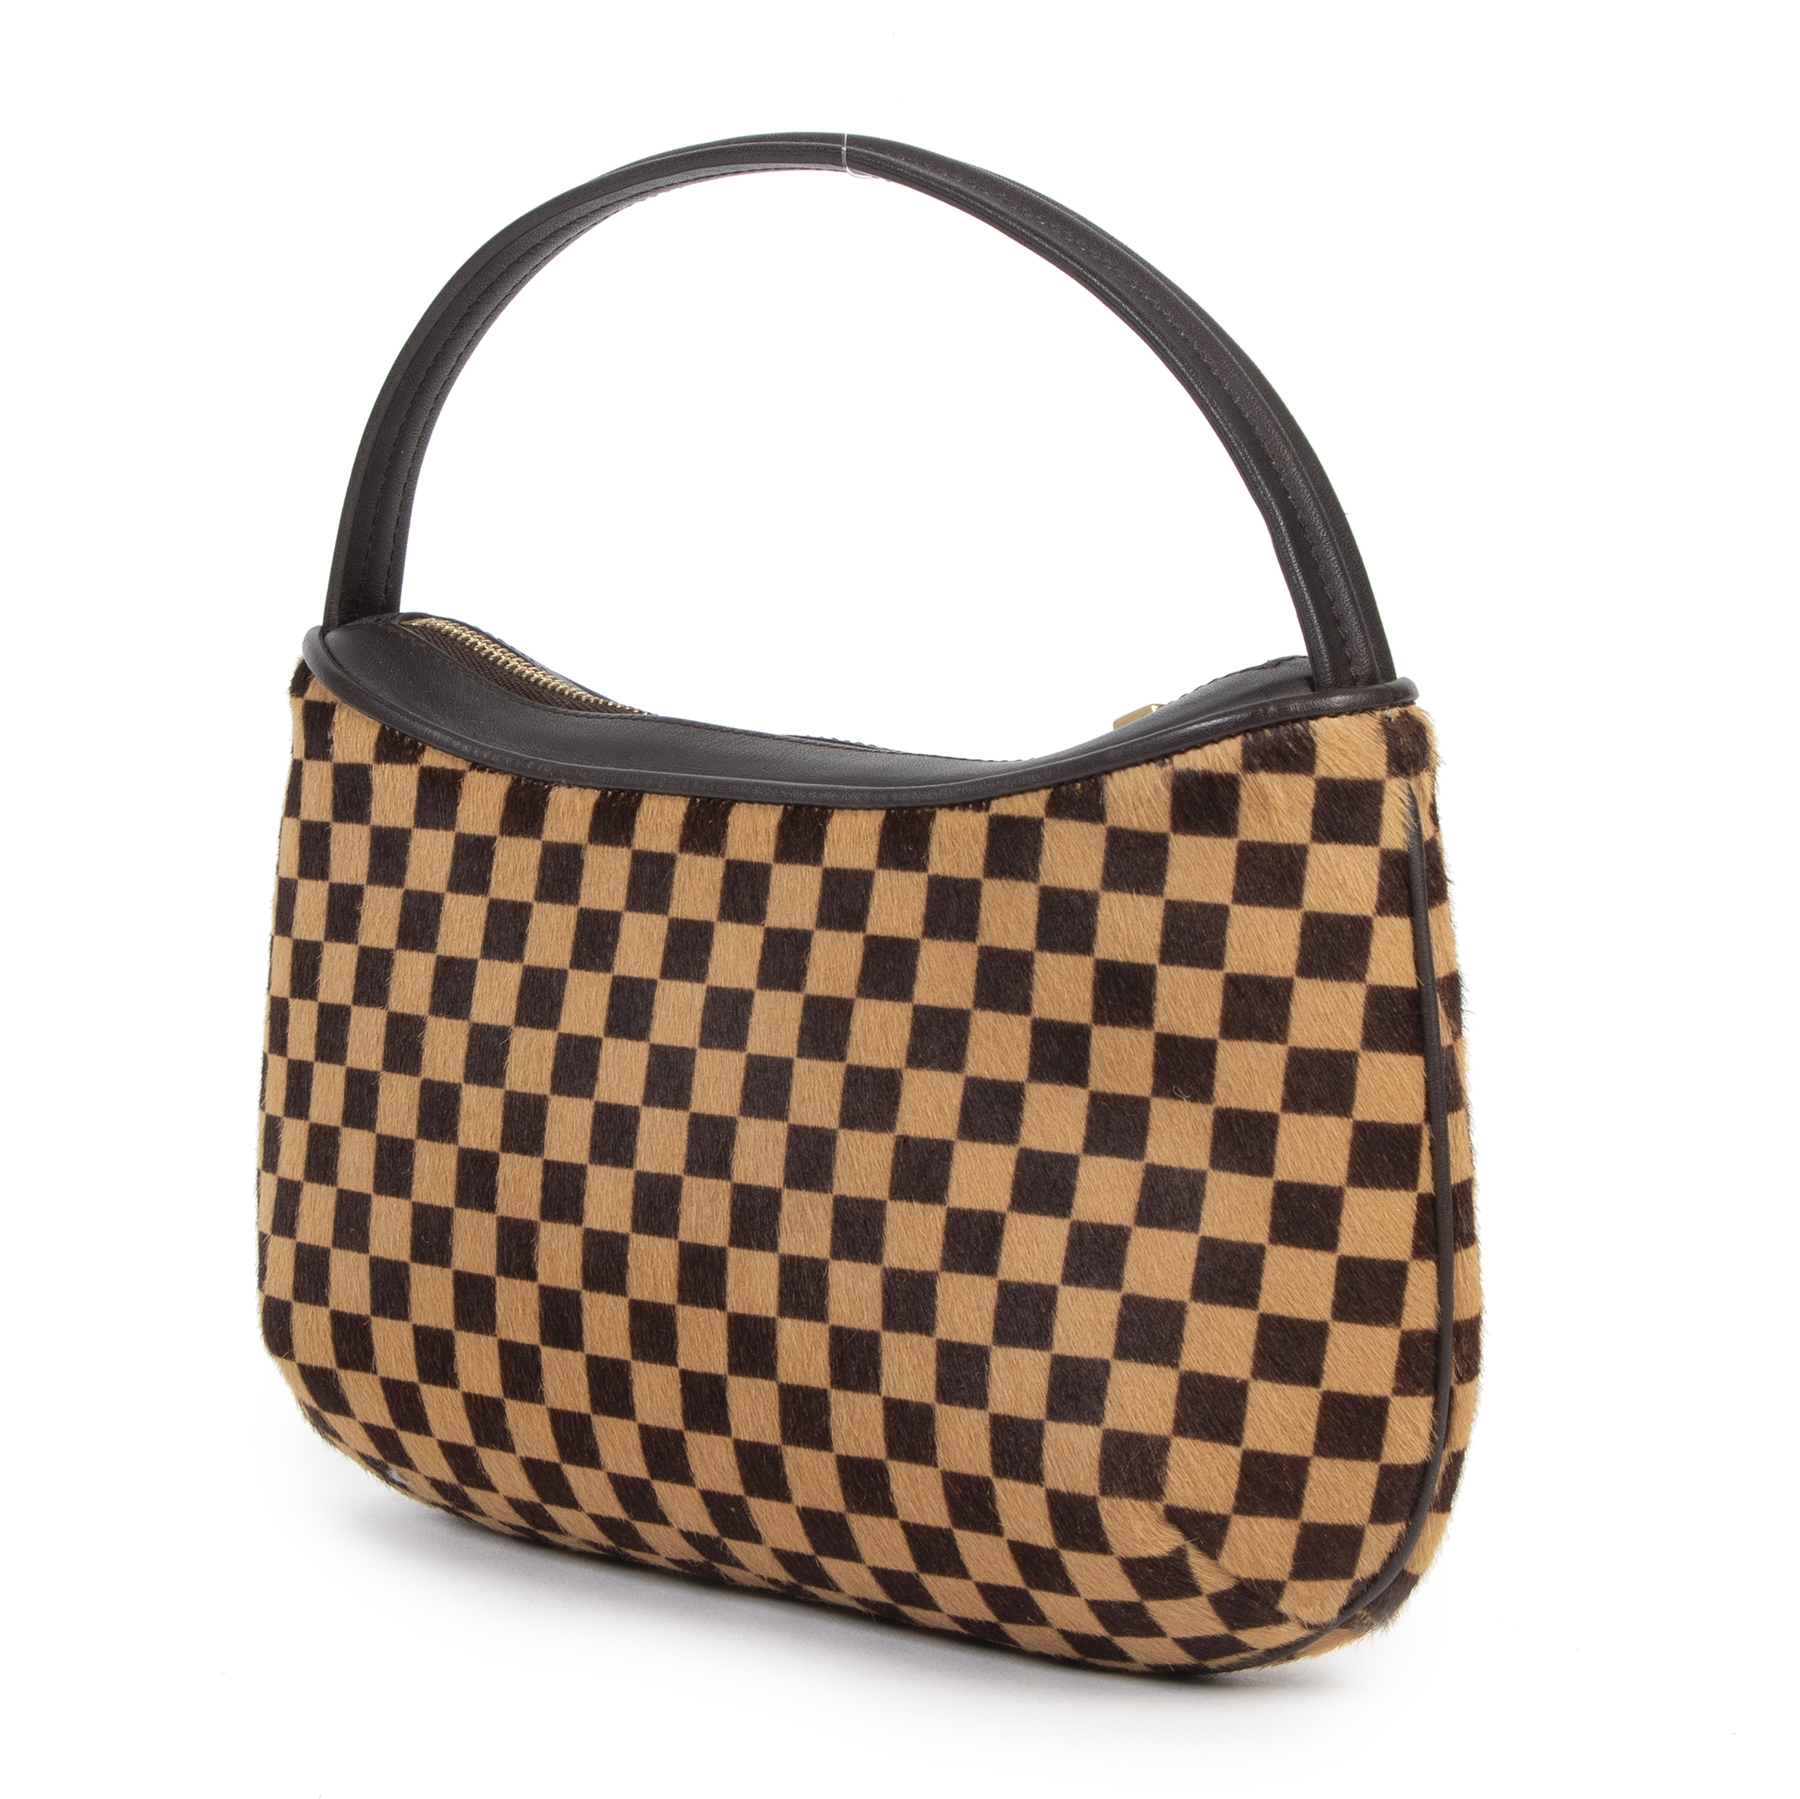 Authentieke tweedehands vintage Louis Vuitton Damier Sauvage Tigre Top Handle Bag koop online webshop LabelLOV